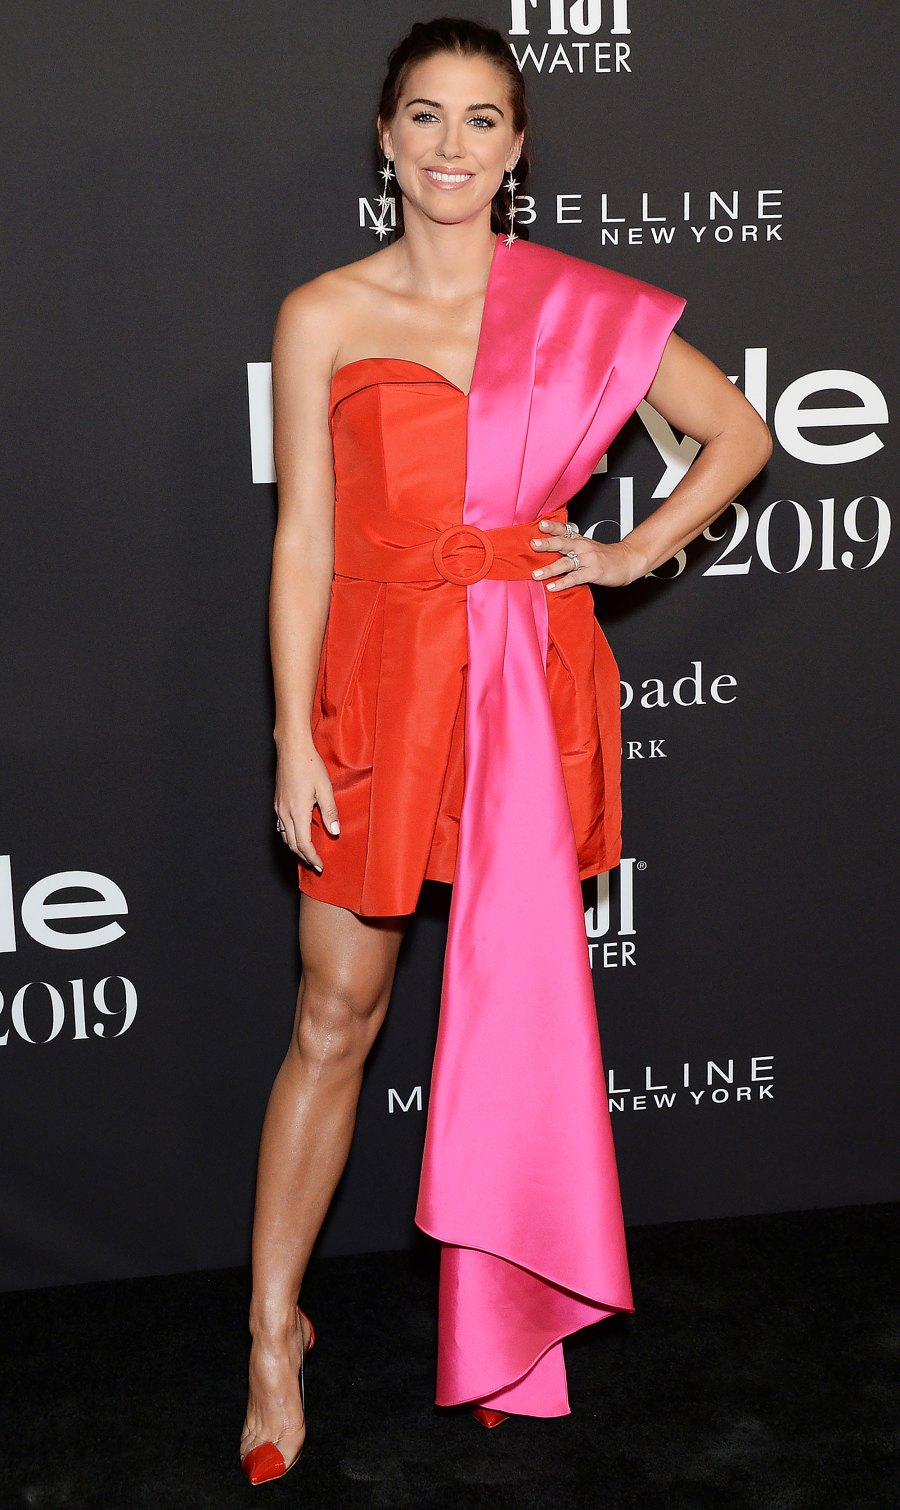 Celebs Wearing Red and Pink - Alex Morgan